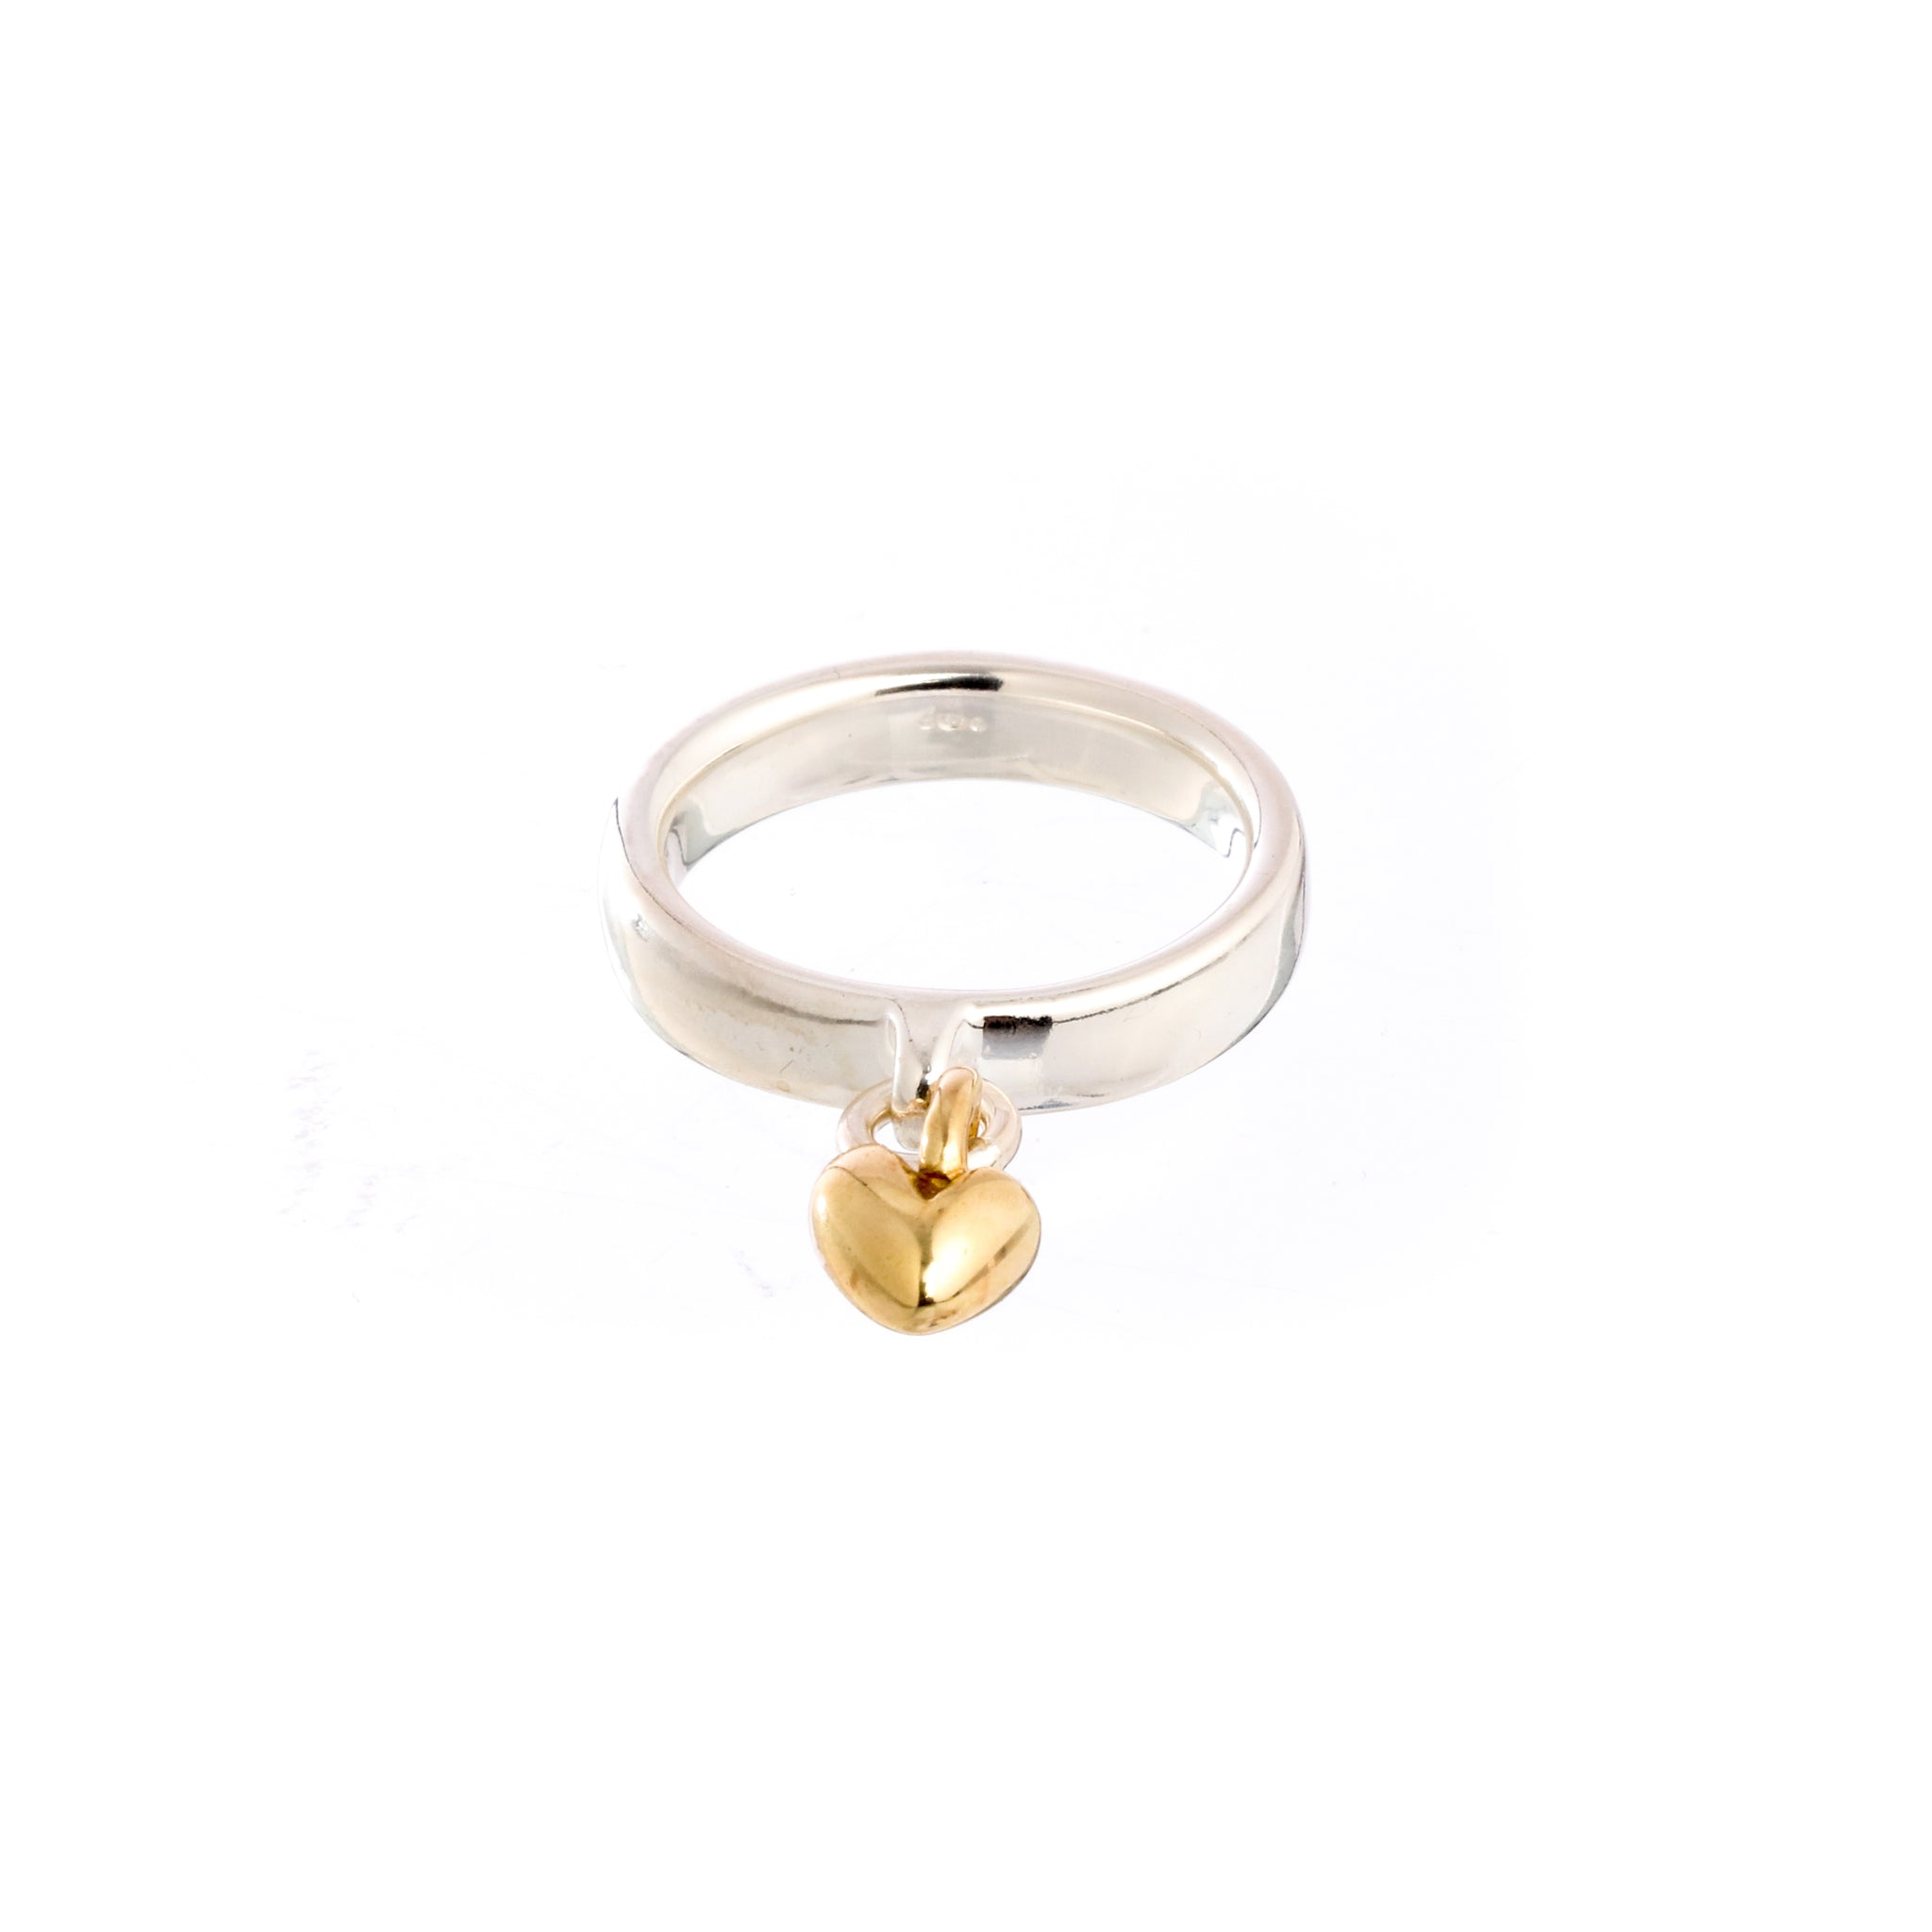 Sweetheart Silver & Gold Charm Ring